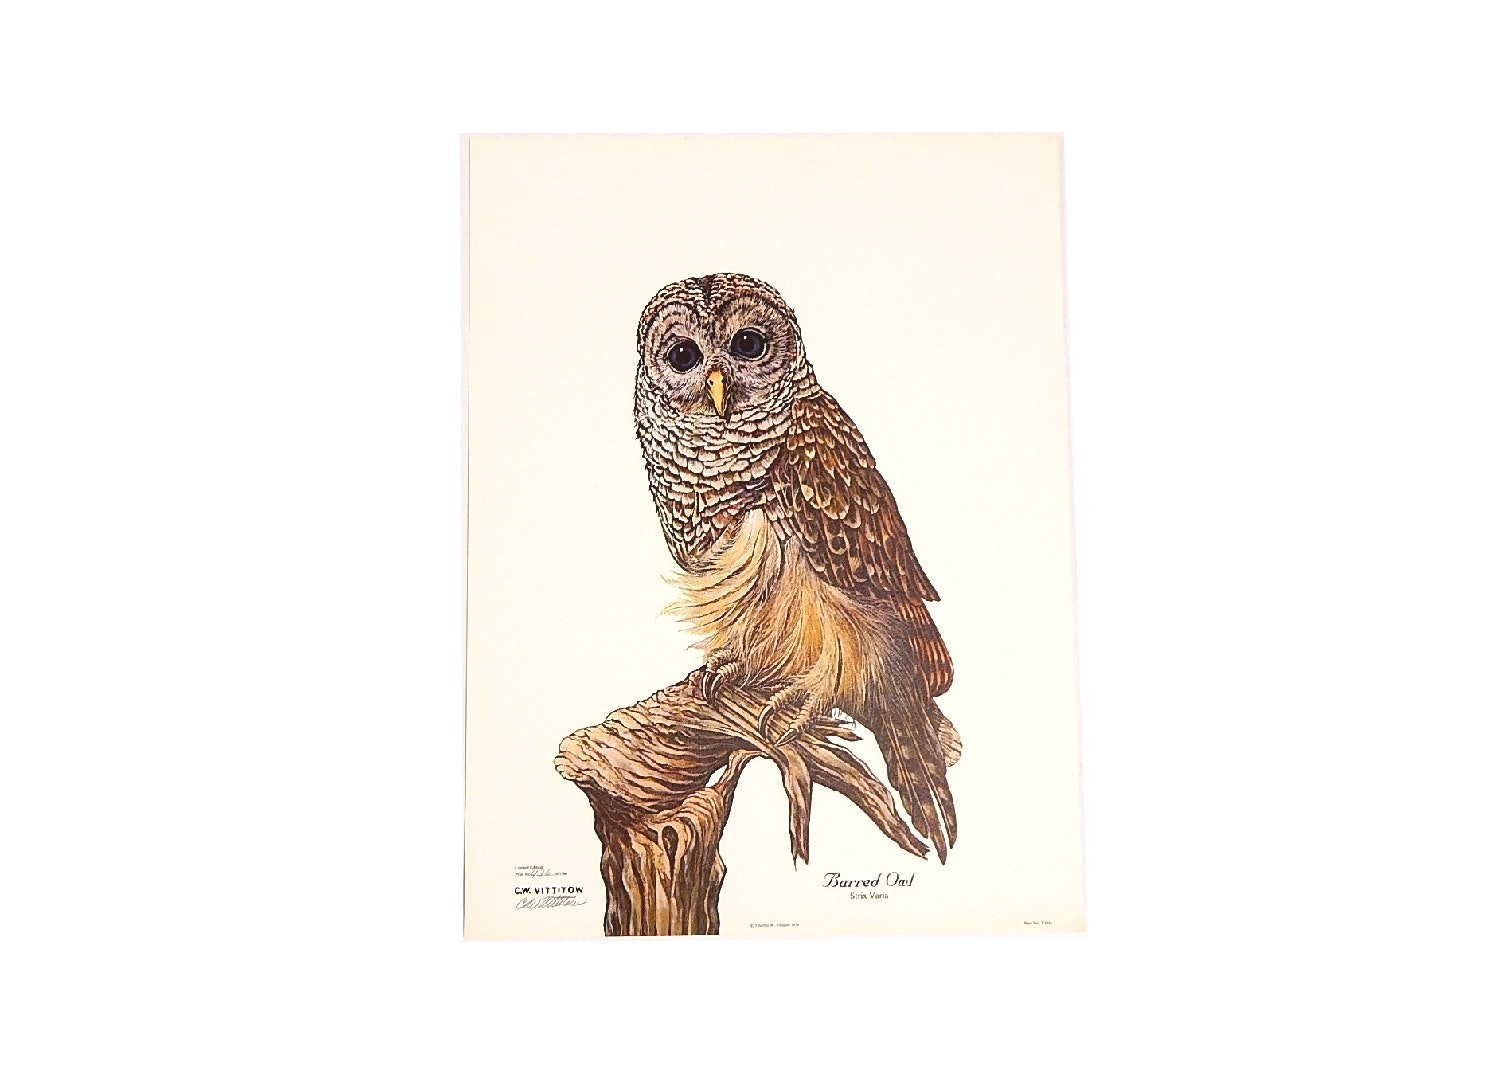 """Unframed 1979 C.W. Vittitow """"Barred Owl"""" Signed Limited Lithograph Print"""